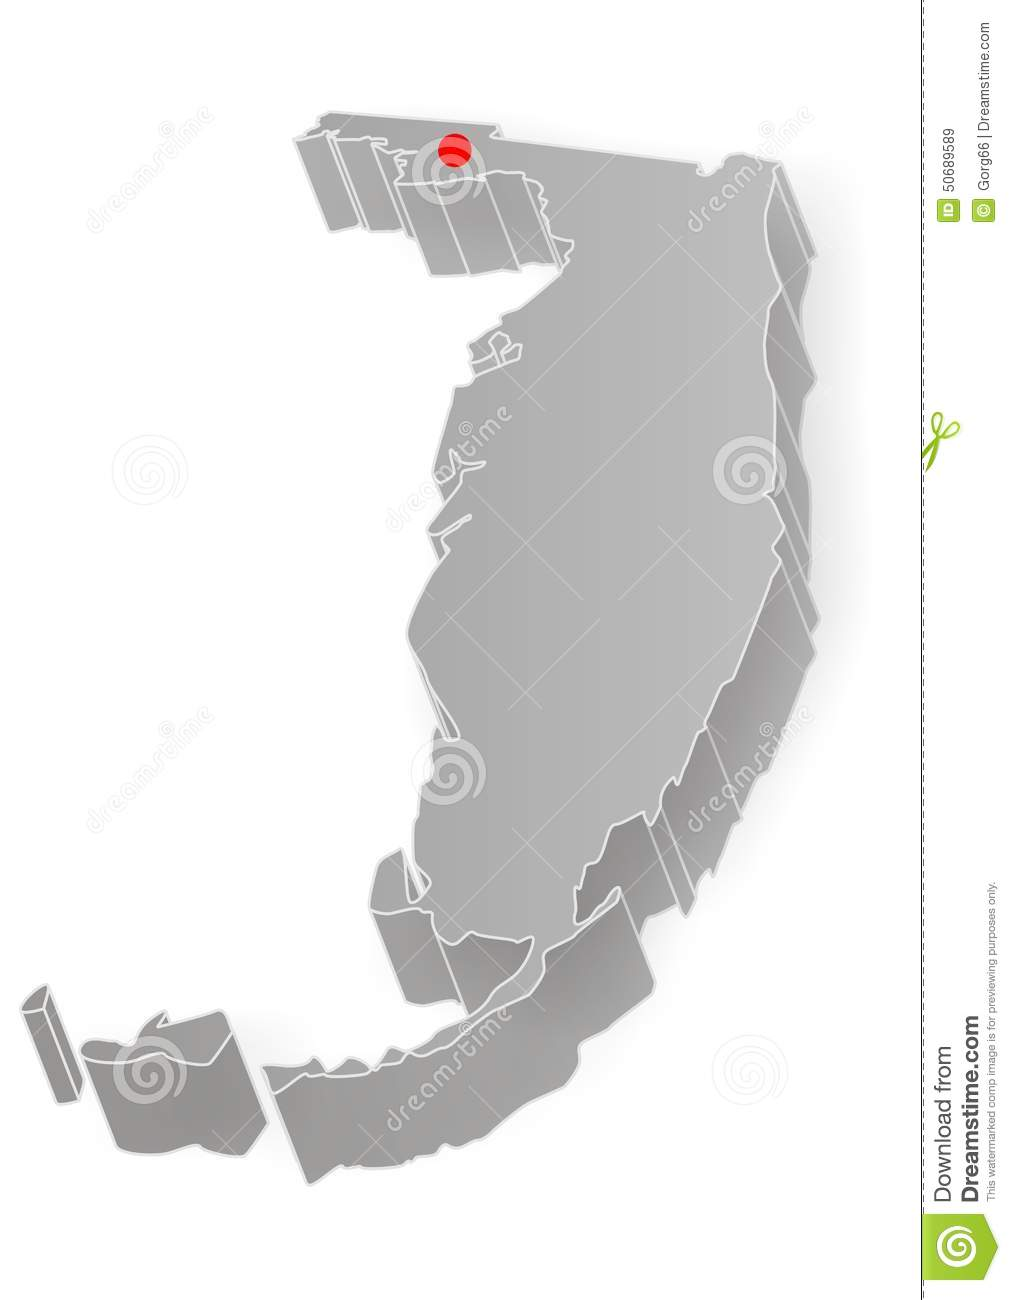 Florida State Map Stock Vector - Image: 50689589